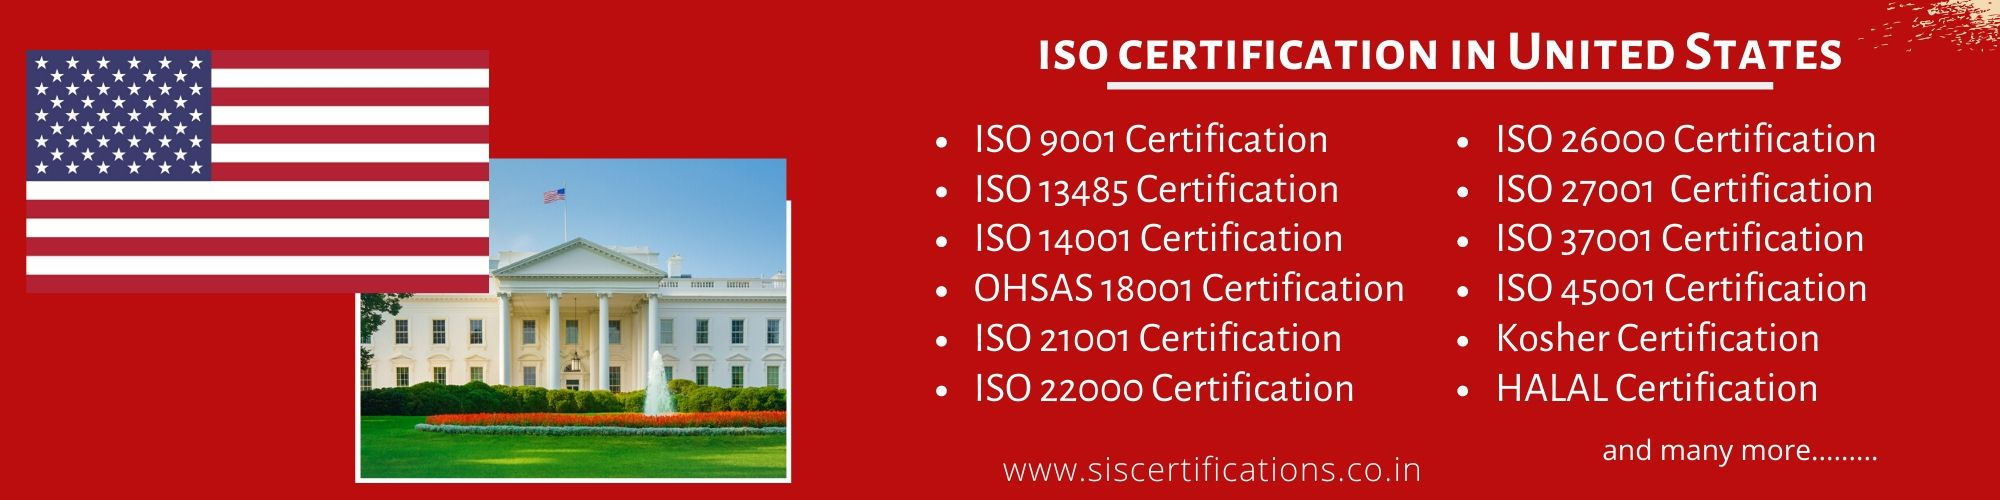 ISO Certification in United states